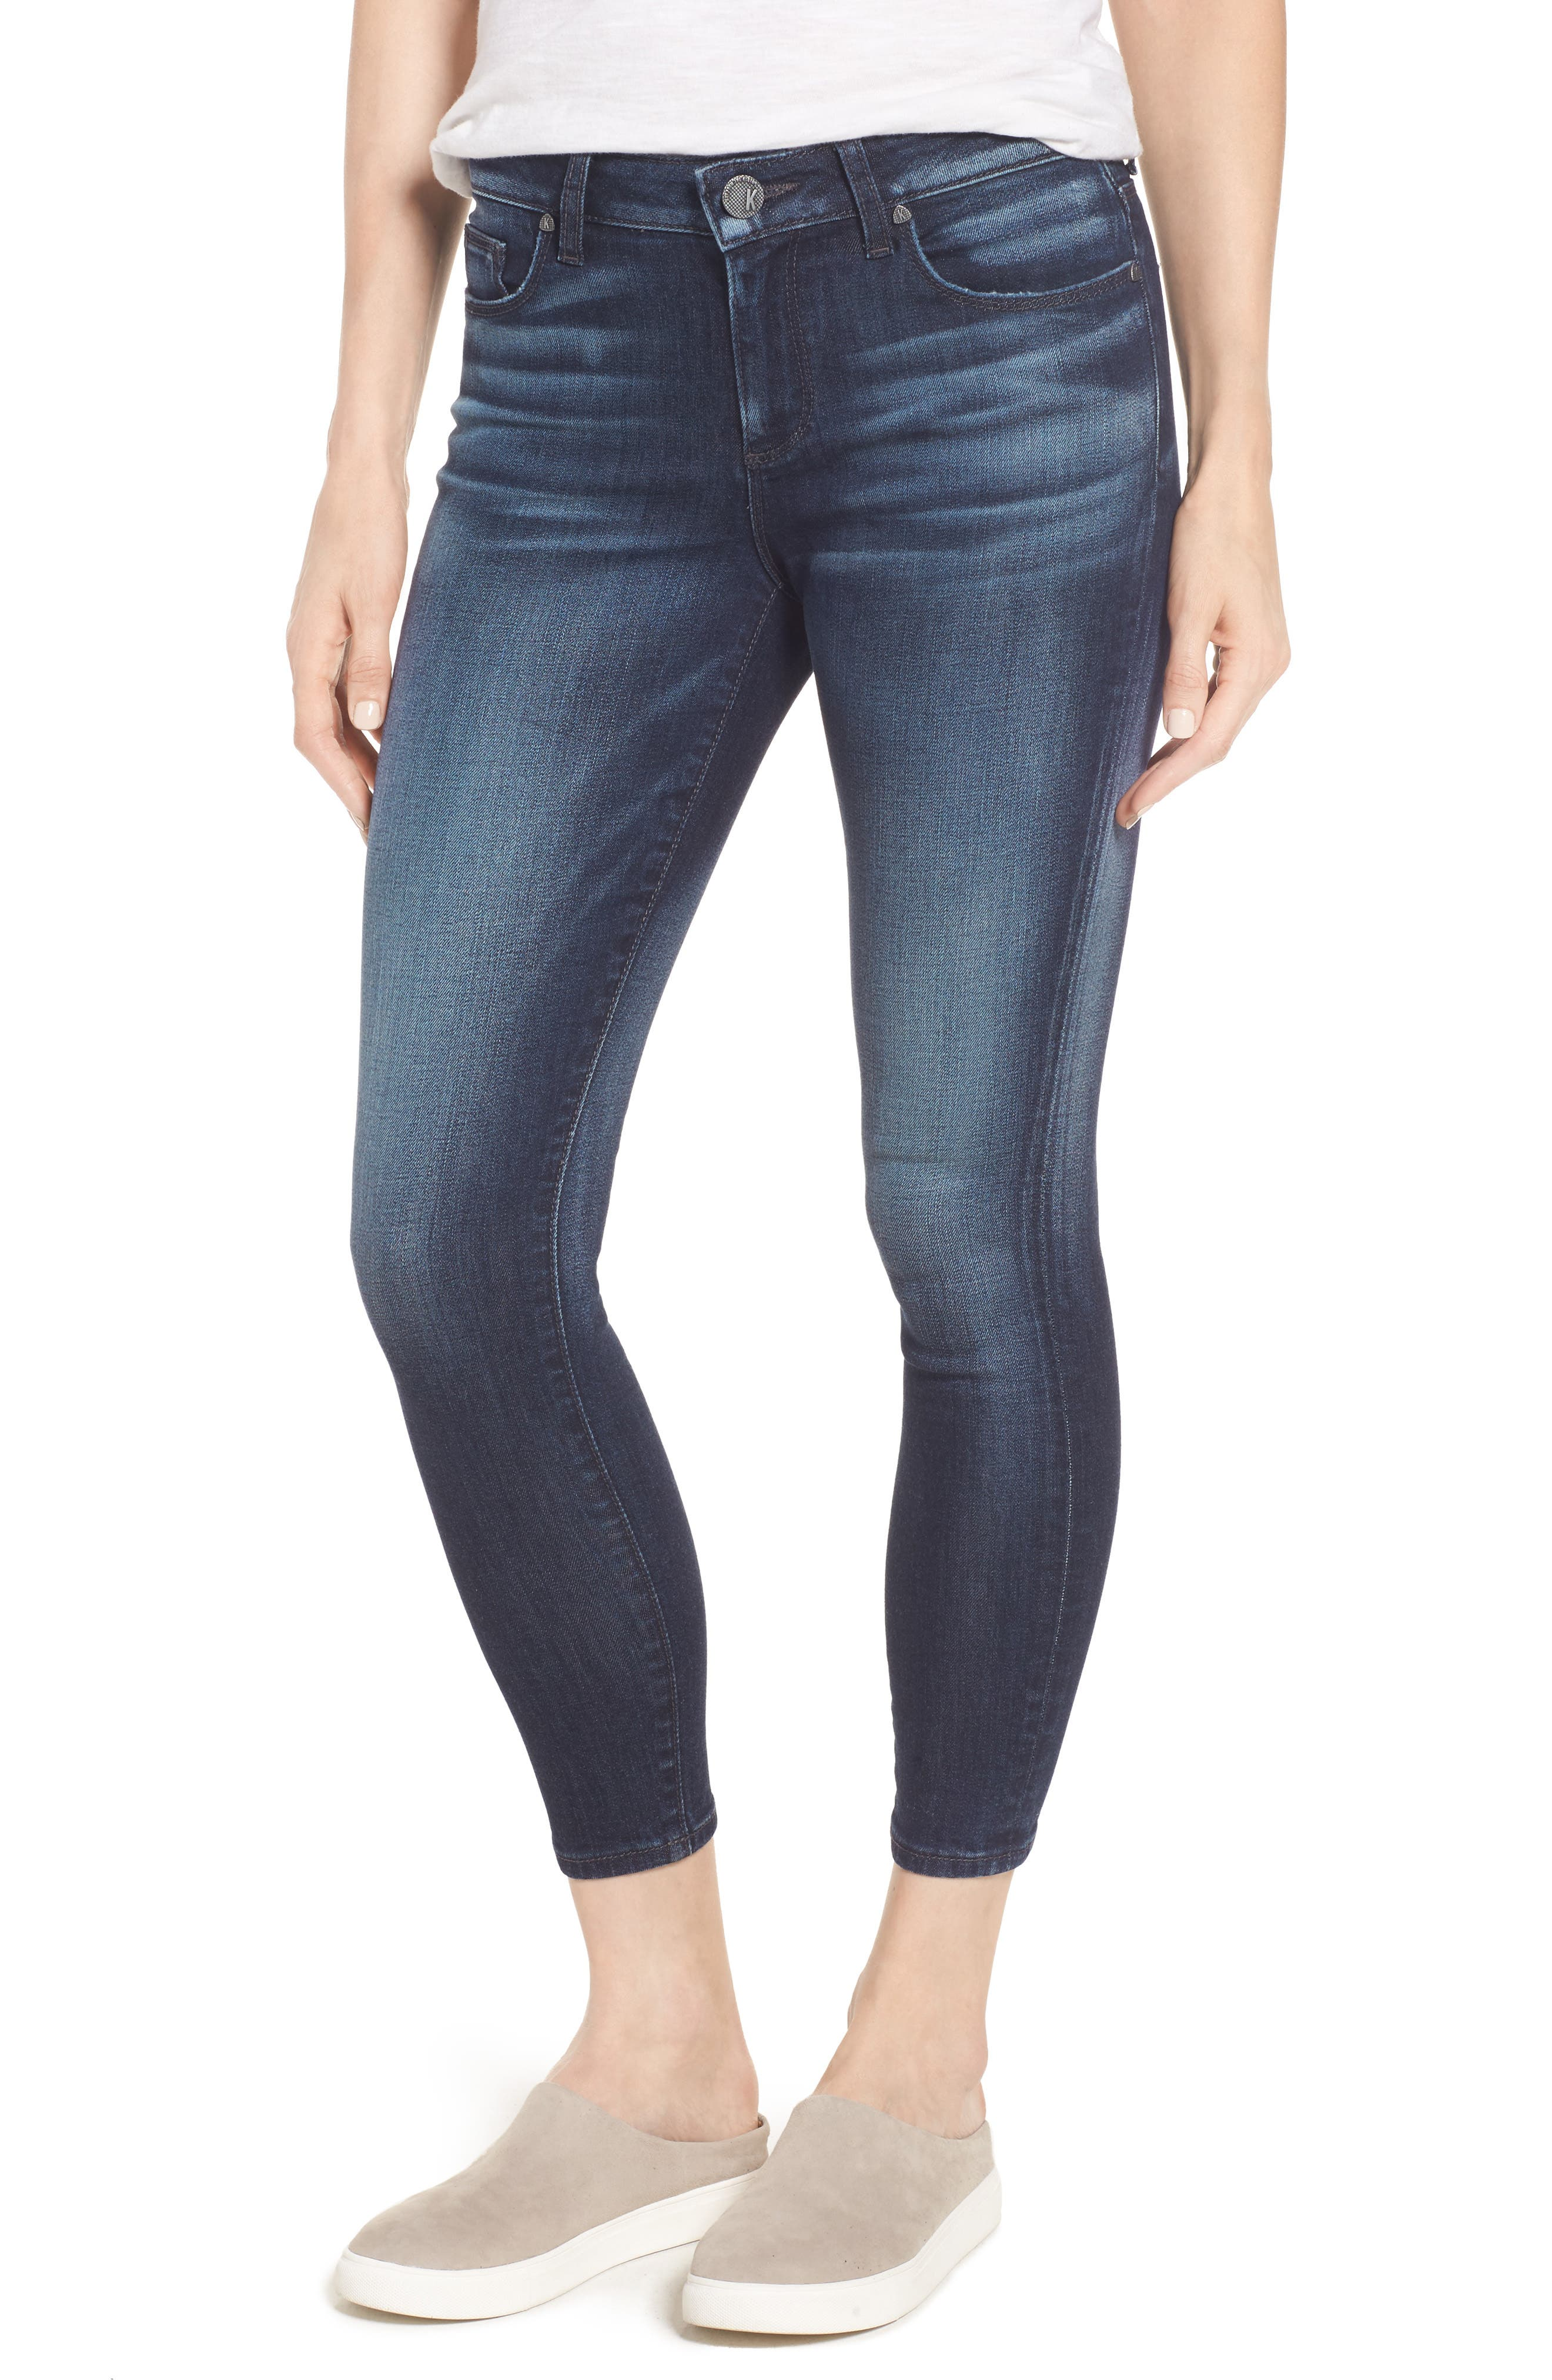 Alternate Image 1 Selected - KUT from The Kloth Diana Curvy Fit Crop Skinny Jeans (Invigorated)